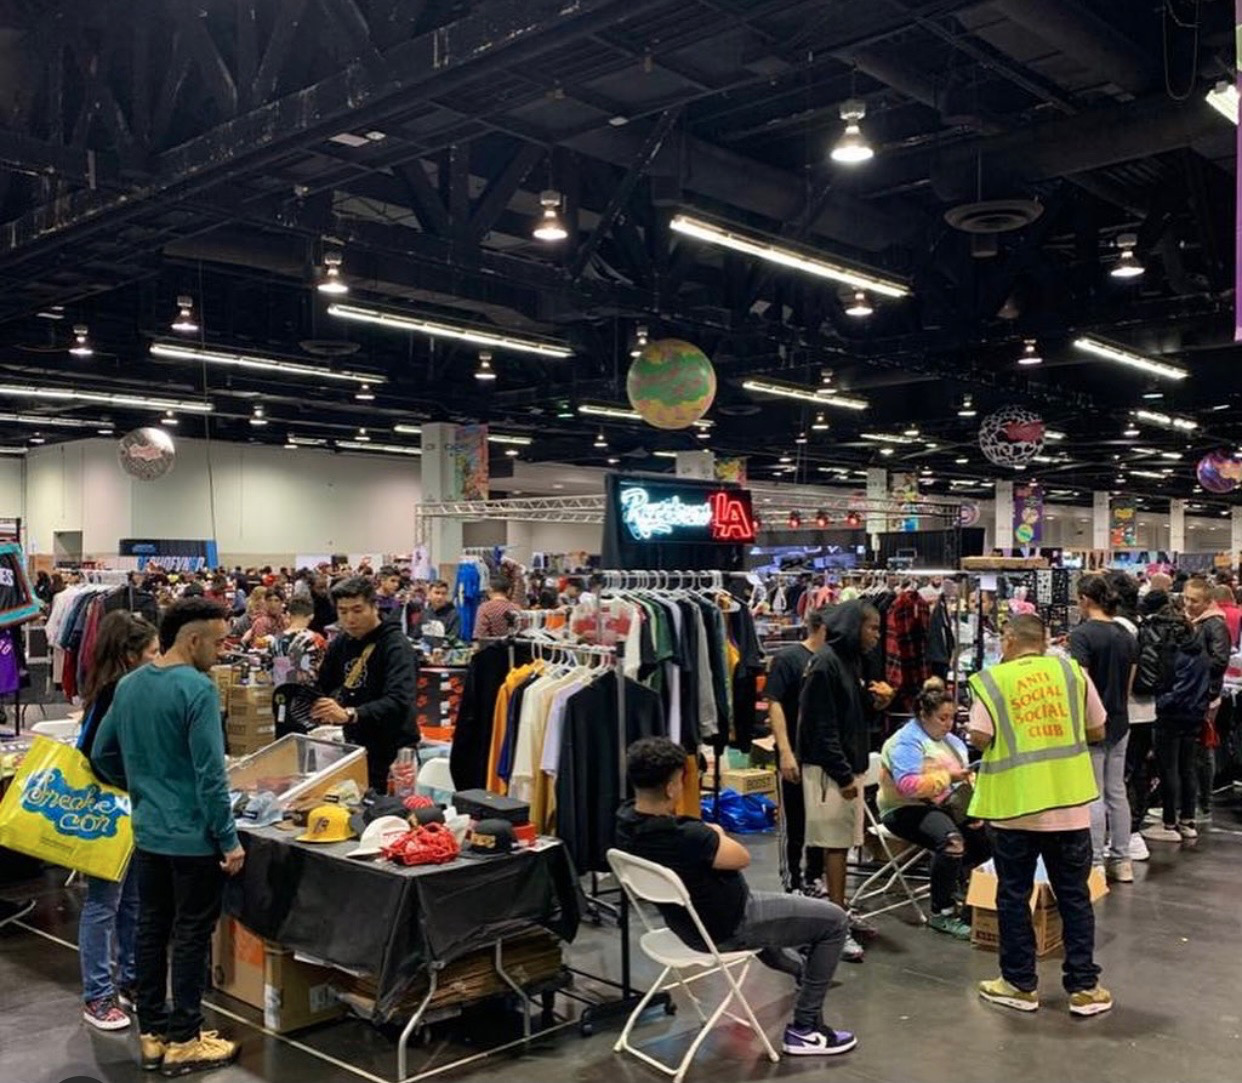 Thousands of sneaker enthusiasts will gather in convention centers and have their chance to resell or buy the hottest collabs out there.